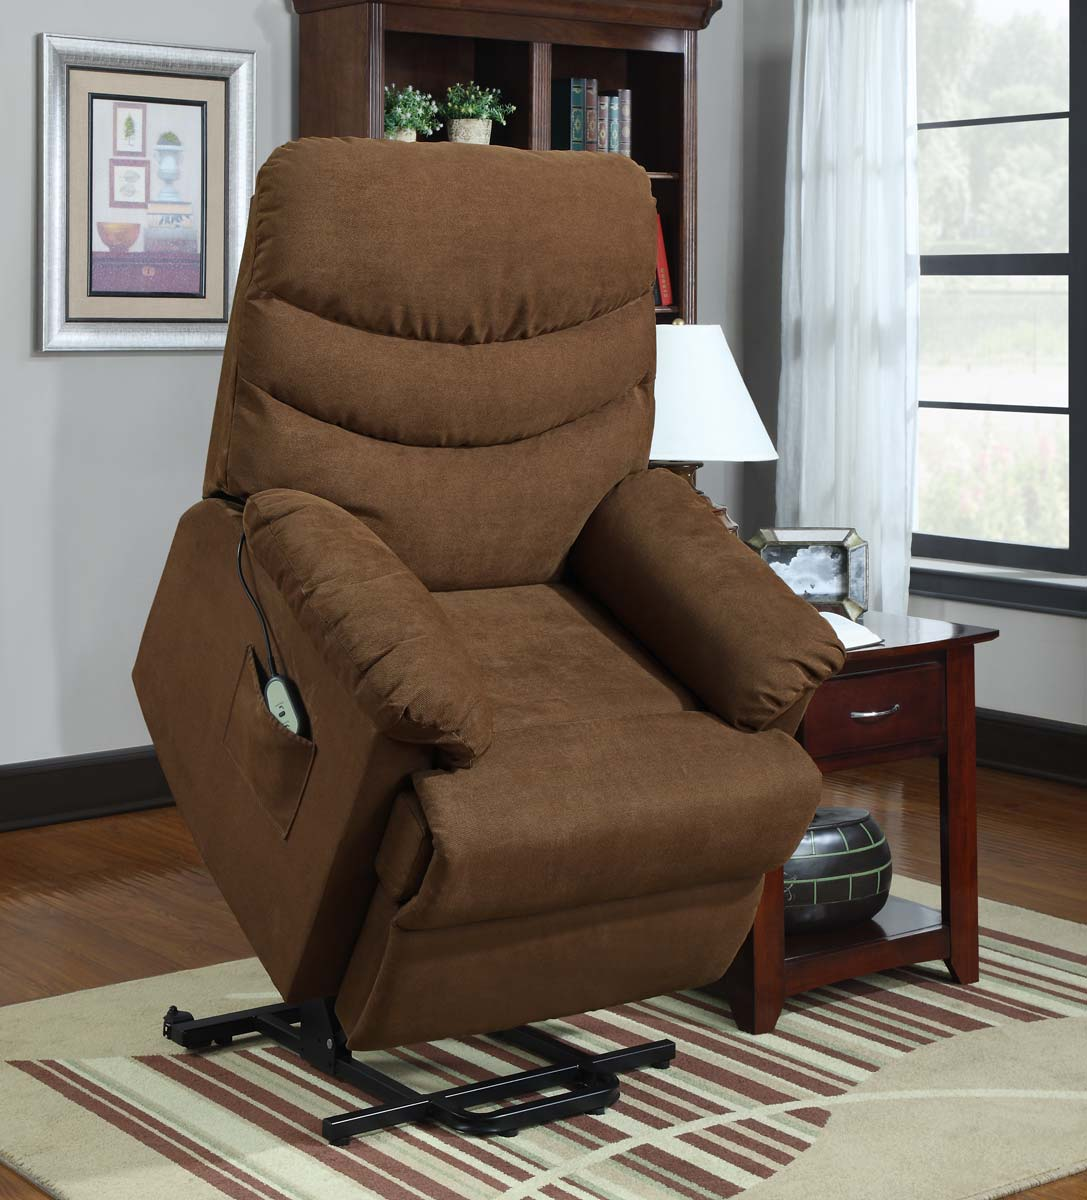 dark brown power lift recliners with pocket on wooden floor plus carpet for living room decor ideas